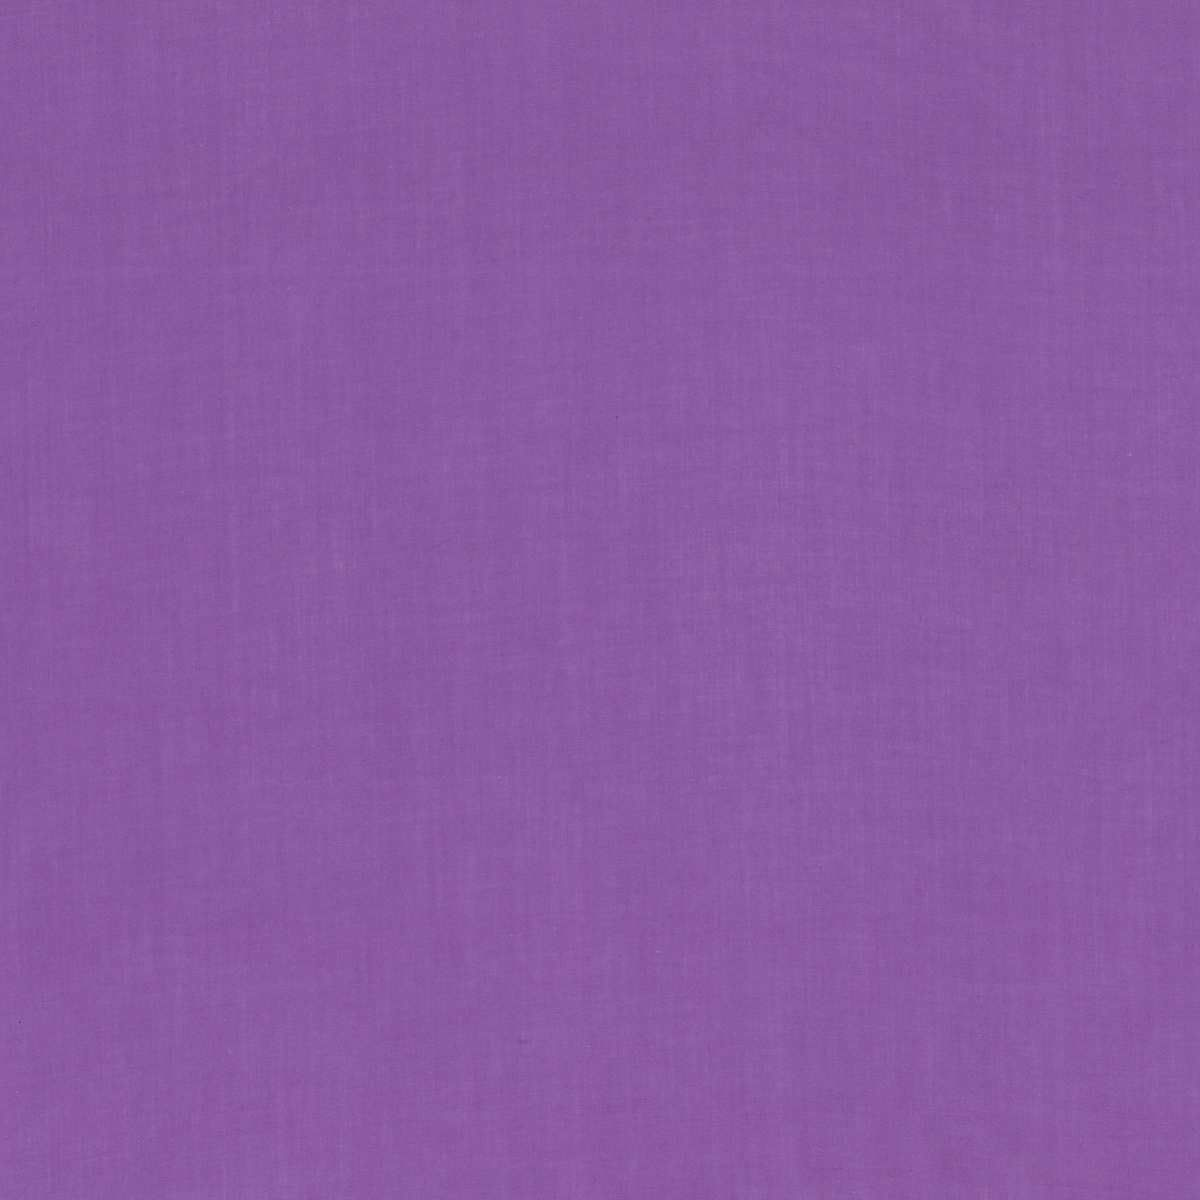 Solid Colour Plain Cotton Lawn Fabric - Purple